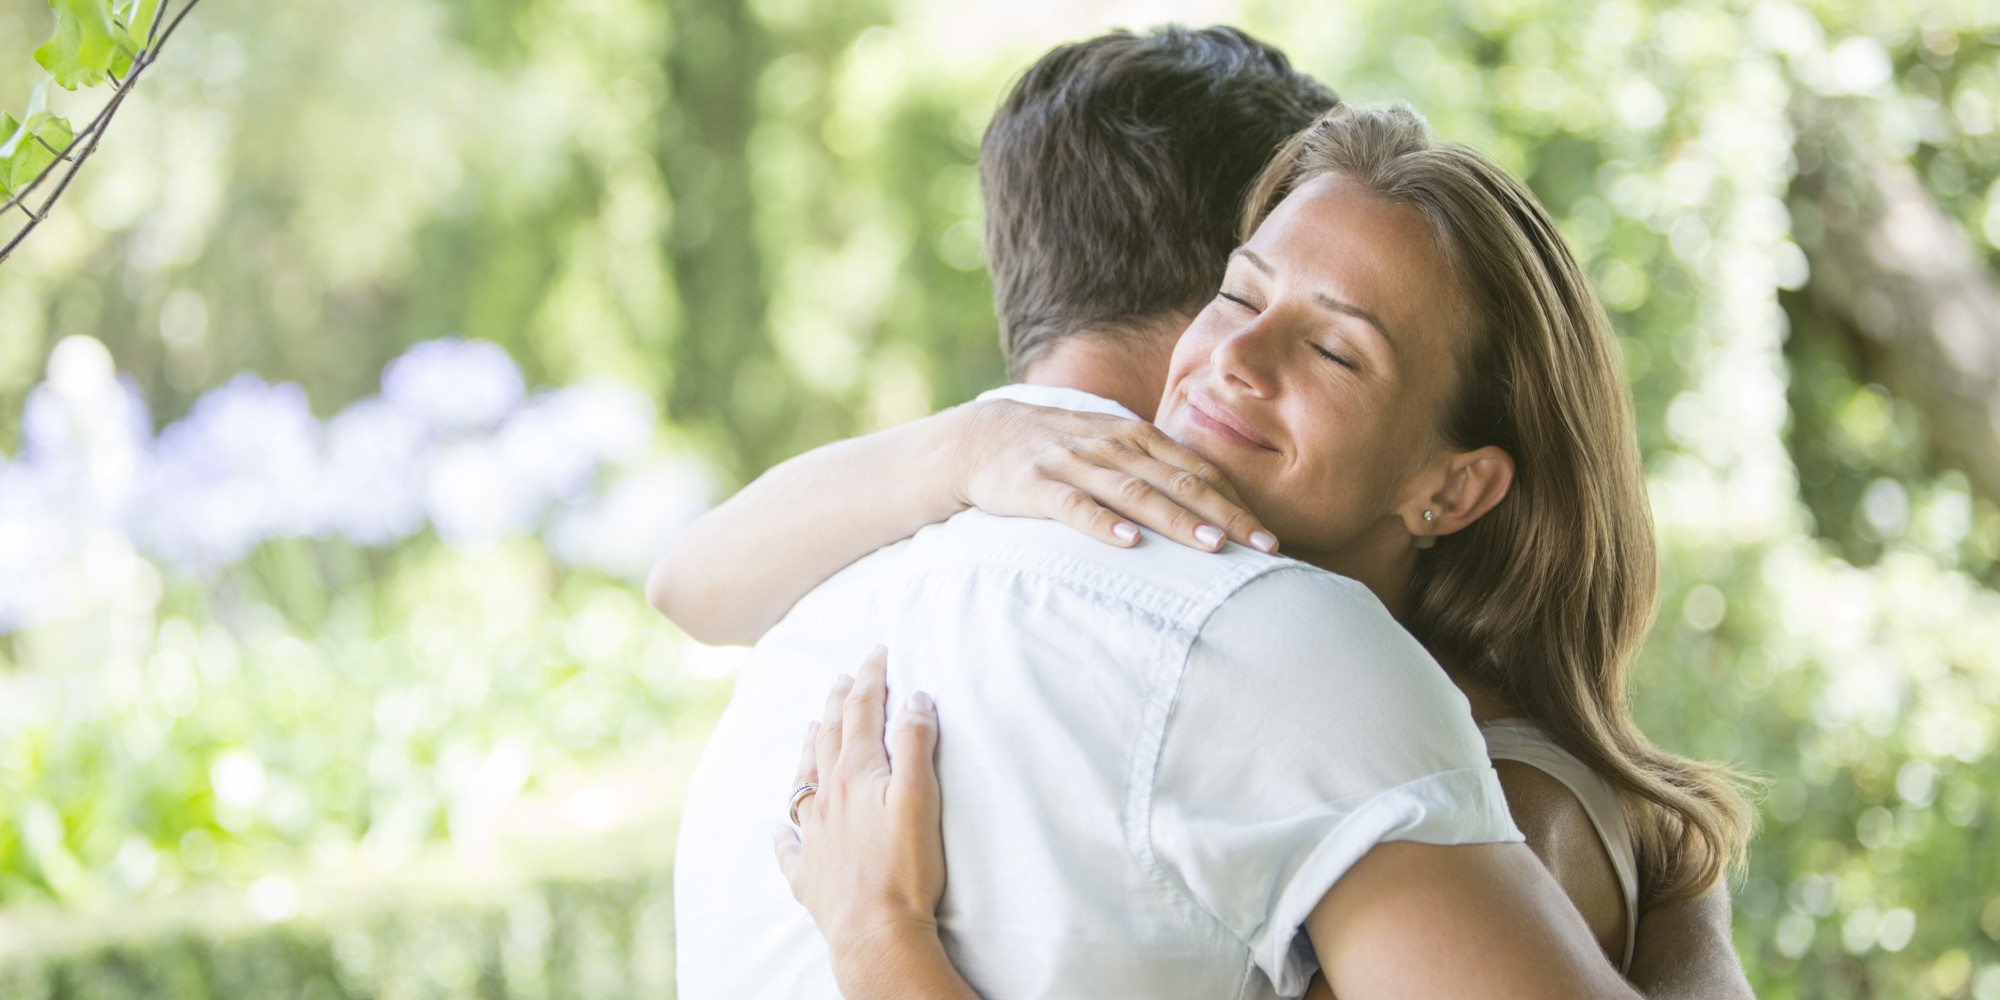 hugging ways why etiquette showing affection important matter huffpost